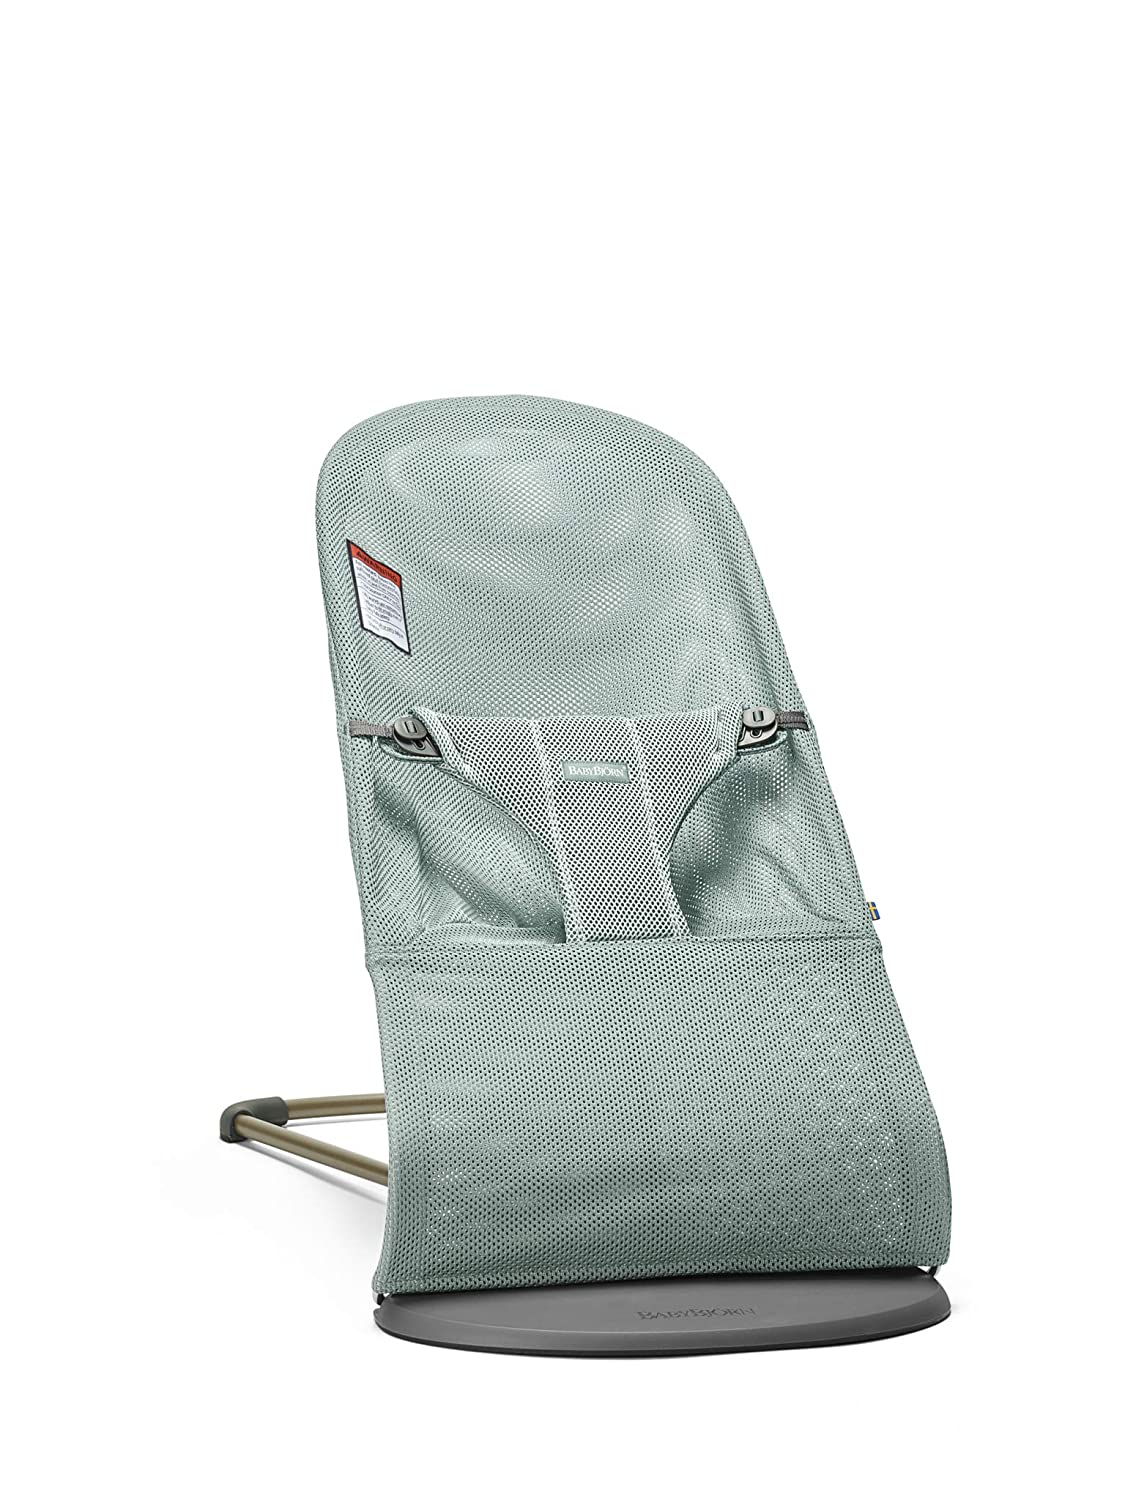 BABYBJORN Bouncer Bliss, Mesh, Frost Green, One Size BABYBJÖRN 006009US